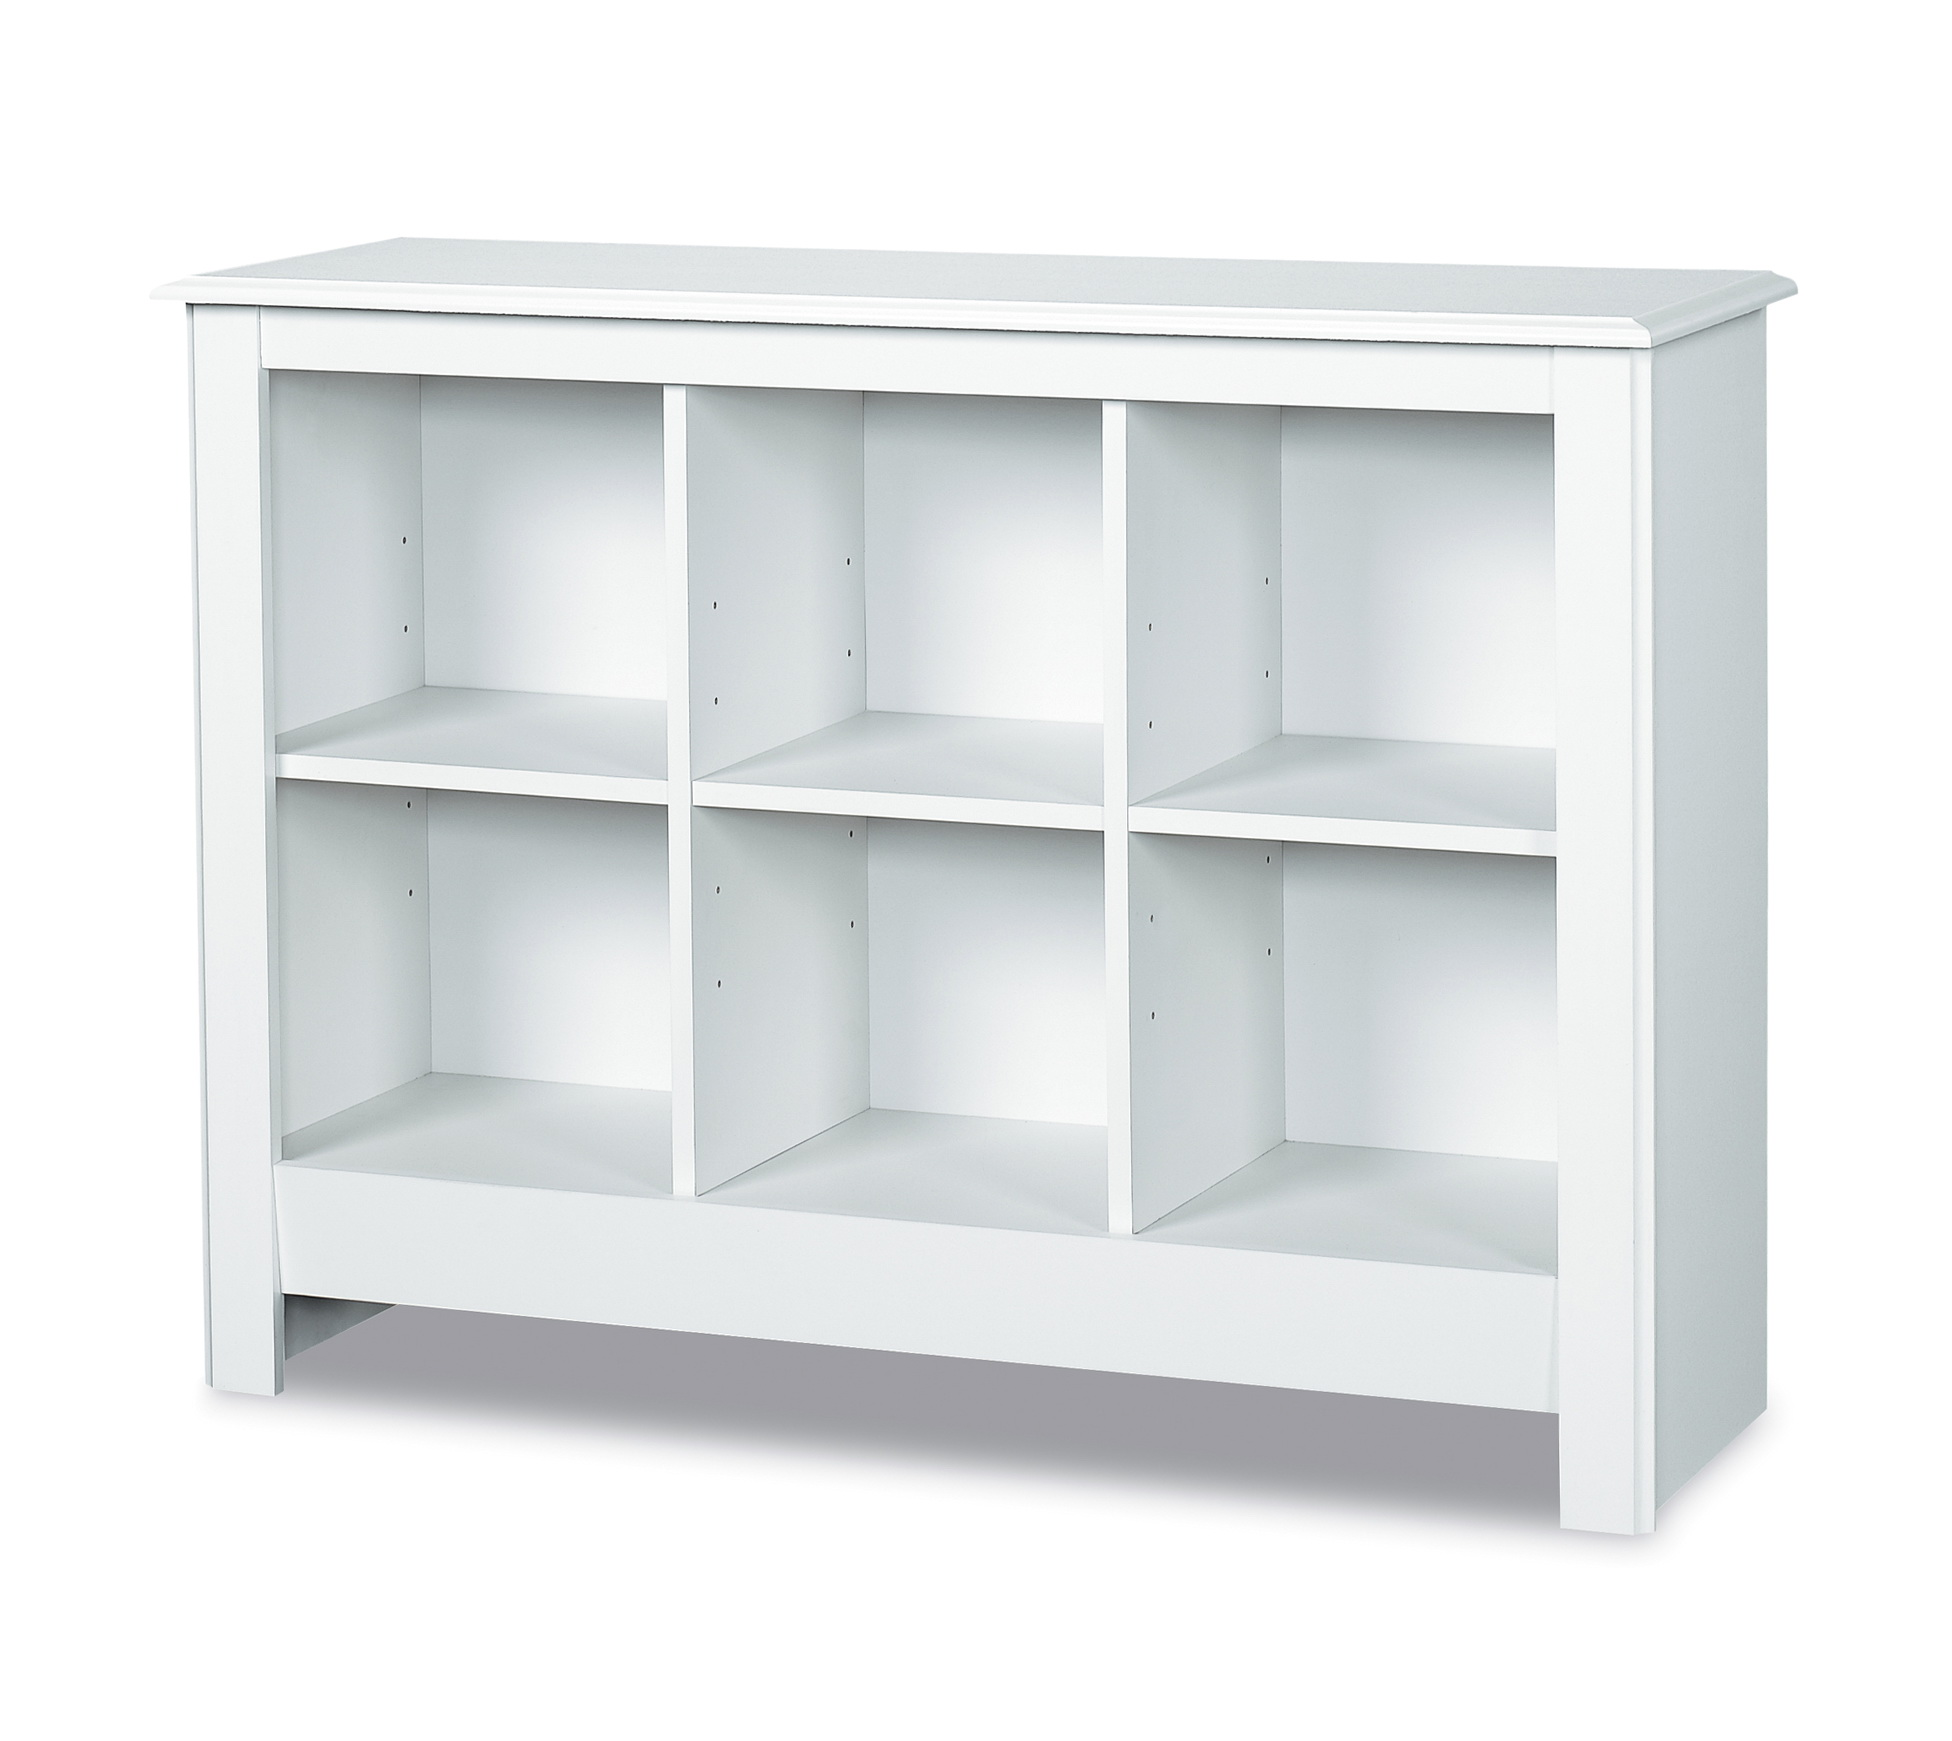 Shoe Rack Target with Unique Design and Elegant Appearance: Walmart Shoe Racks | Storage Cubbies Target | Shoe Rack Target